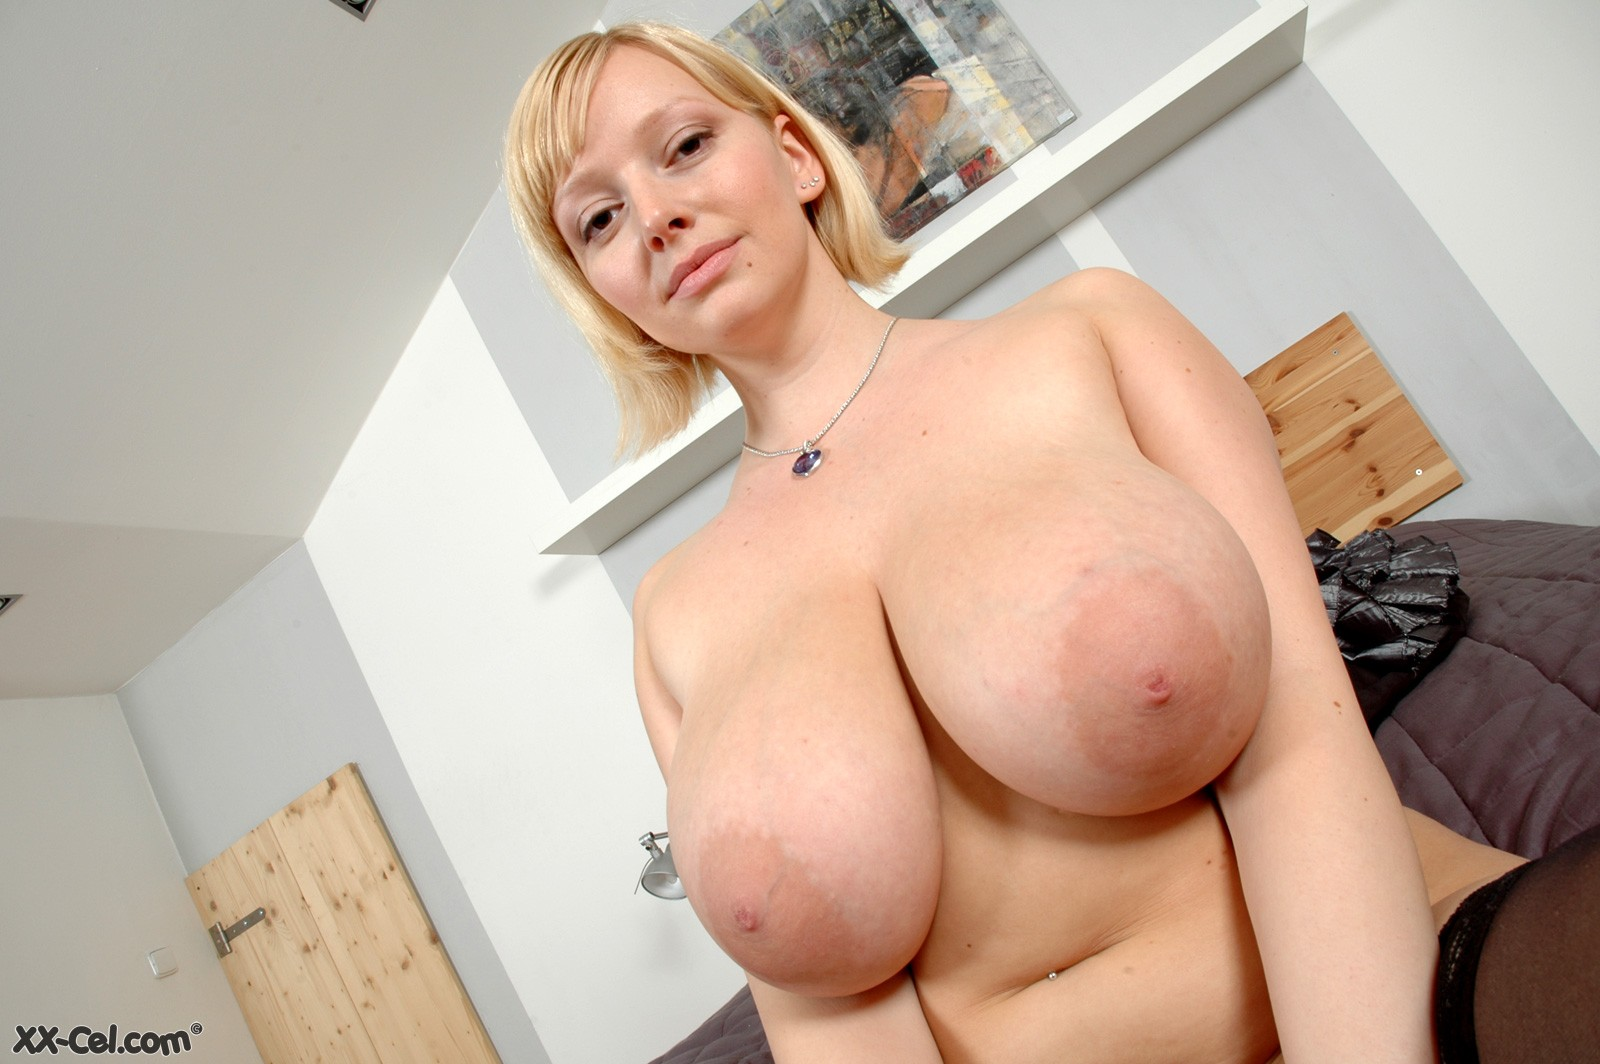 Big and natural tits